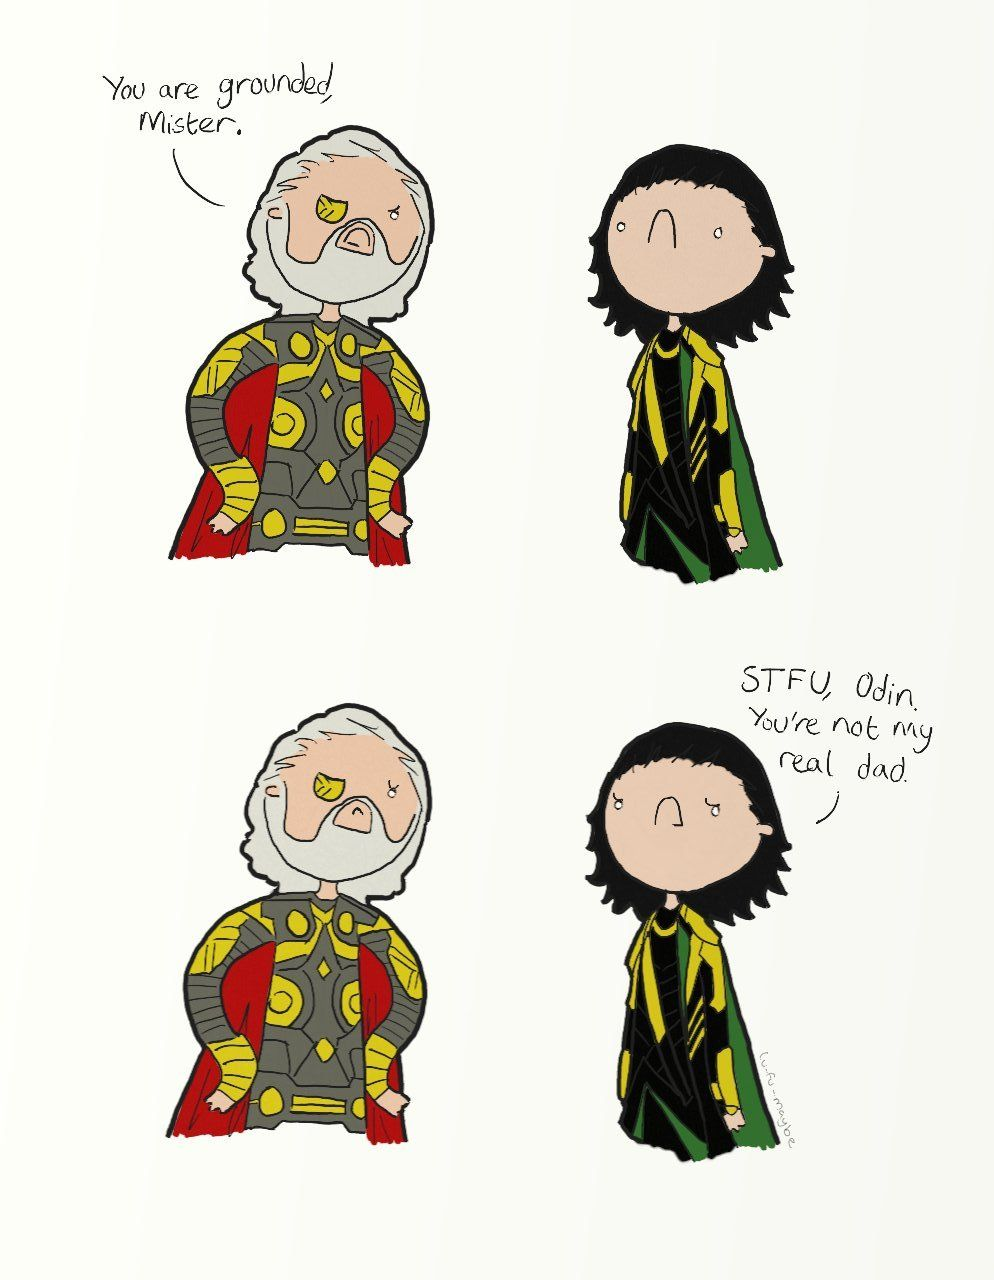 Just rewatched the scene where Loki finds out. Hiddles looked so distraught